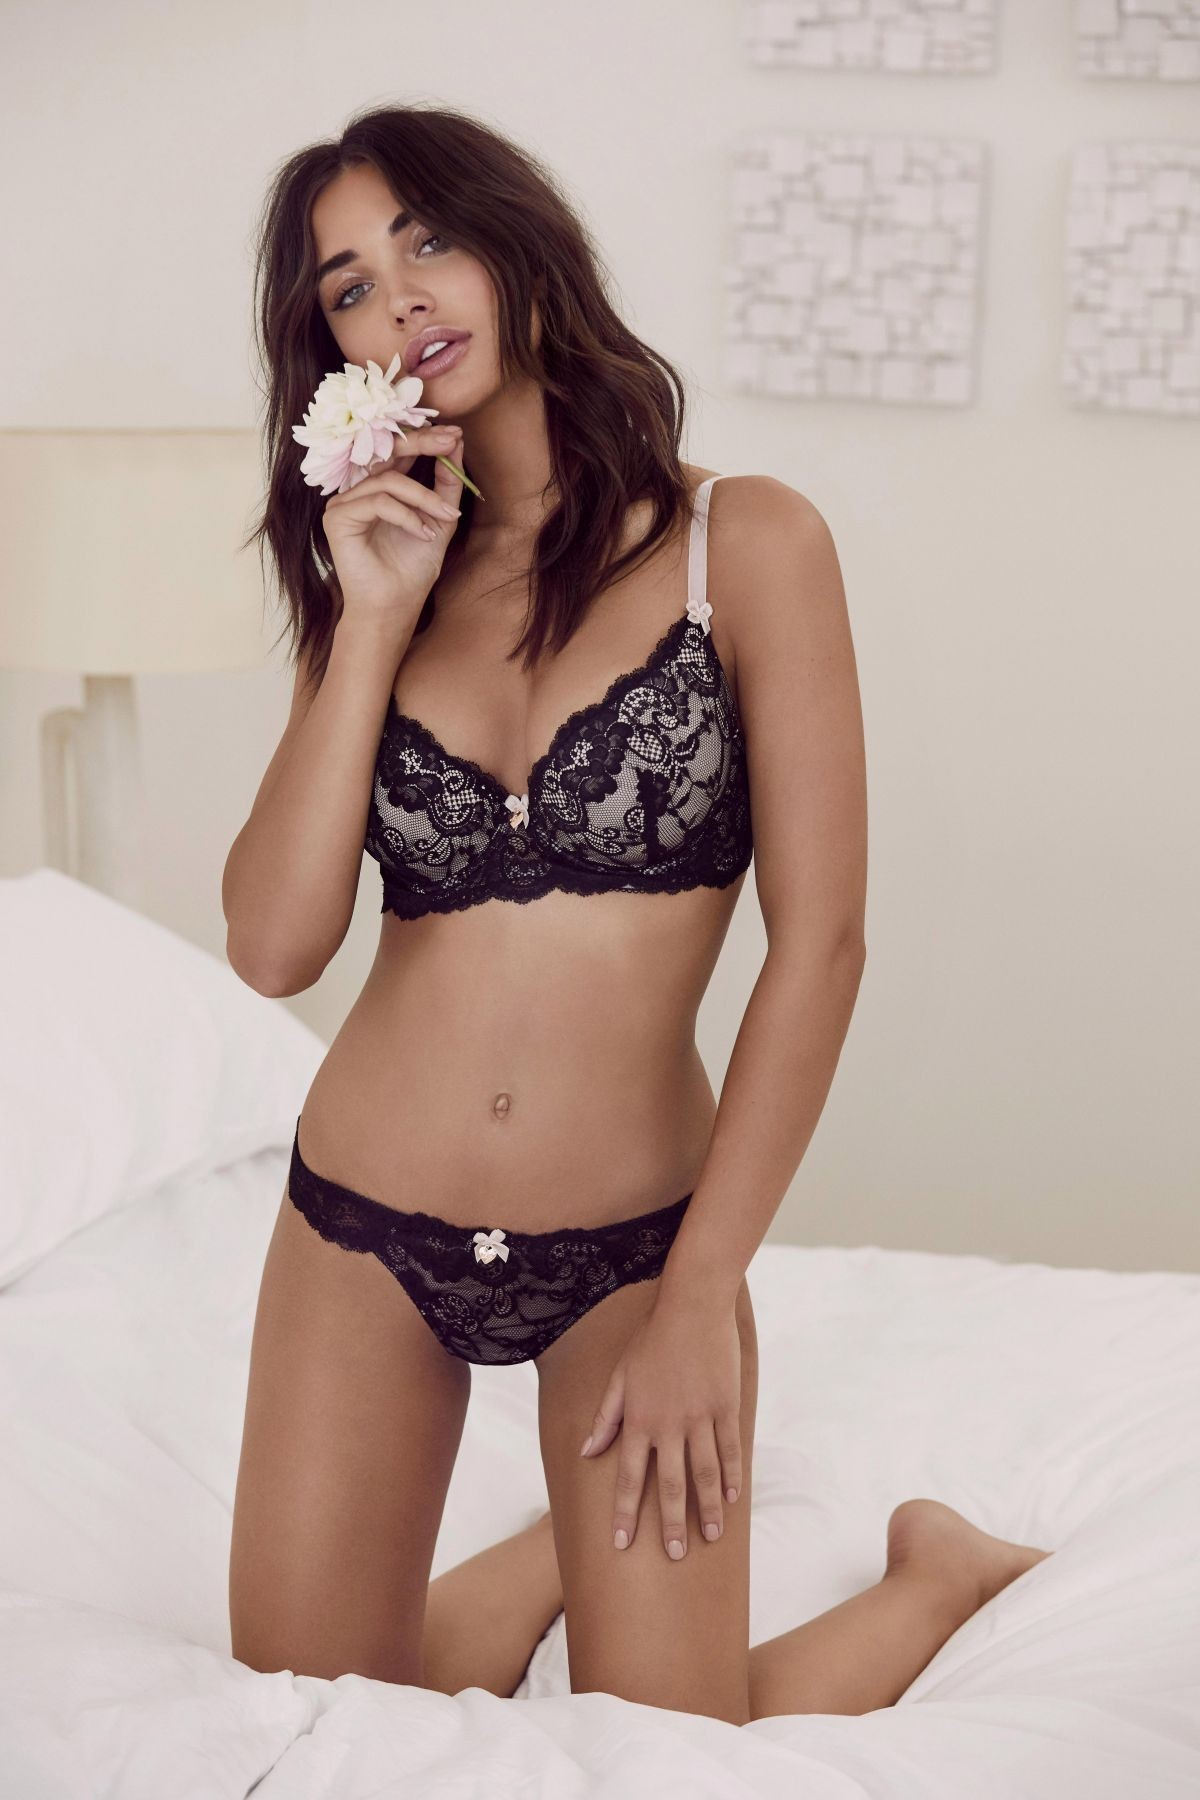 Amy Jackson Naked Video amy jackson - page 3 pictures, naked, oops, topless, bikini